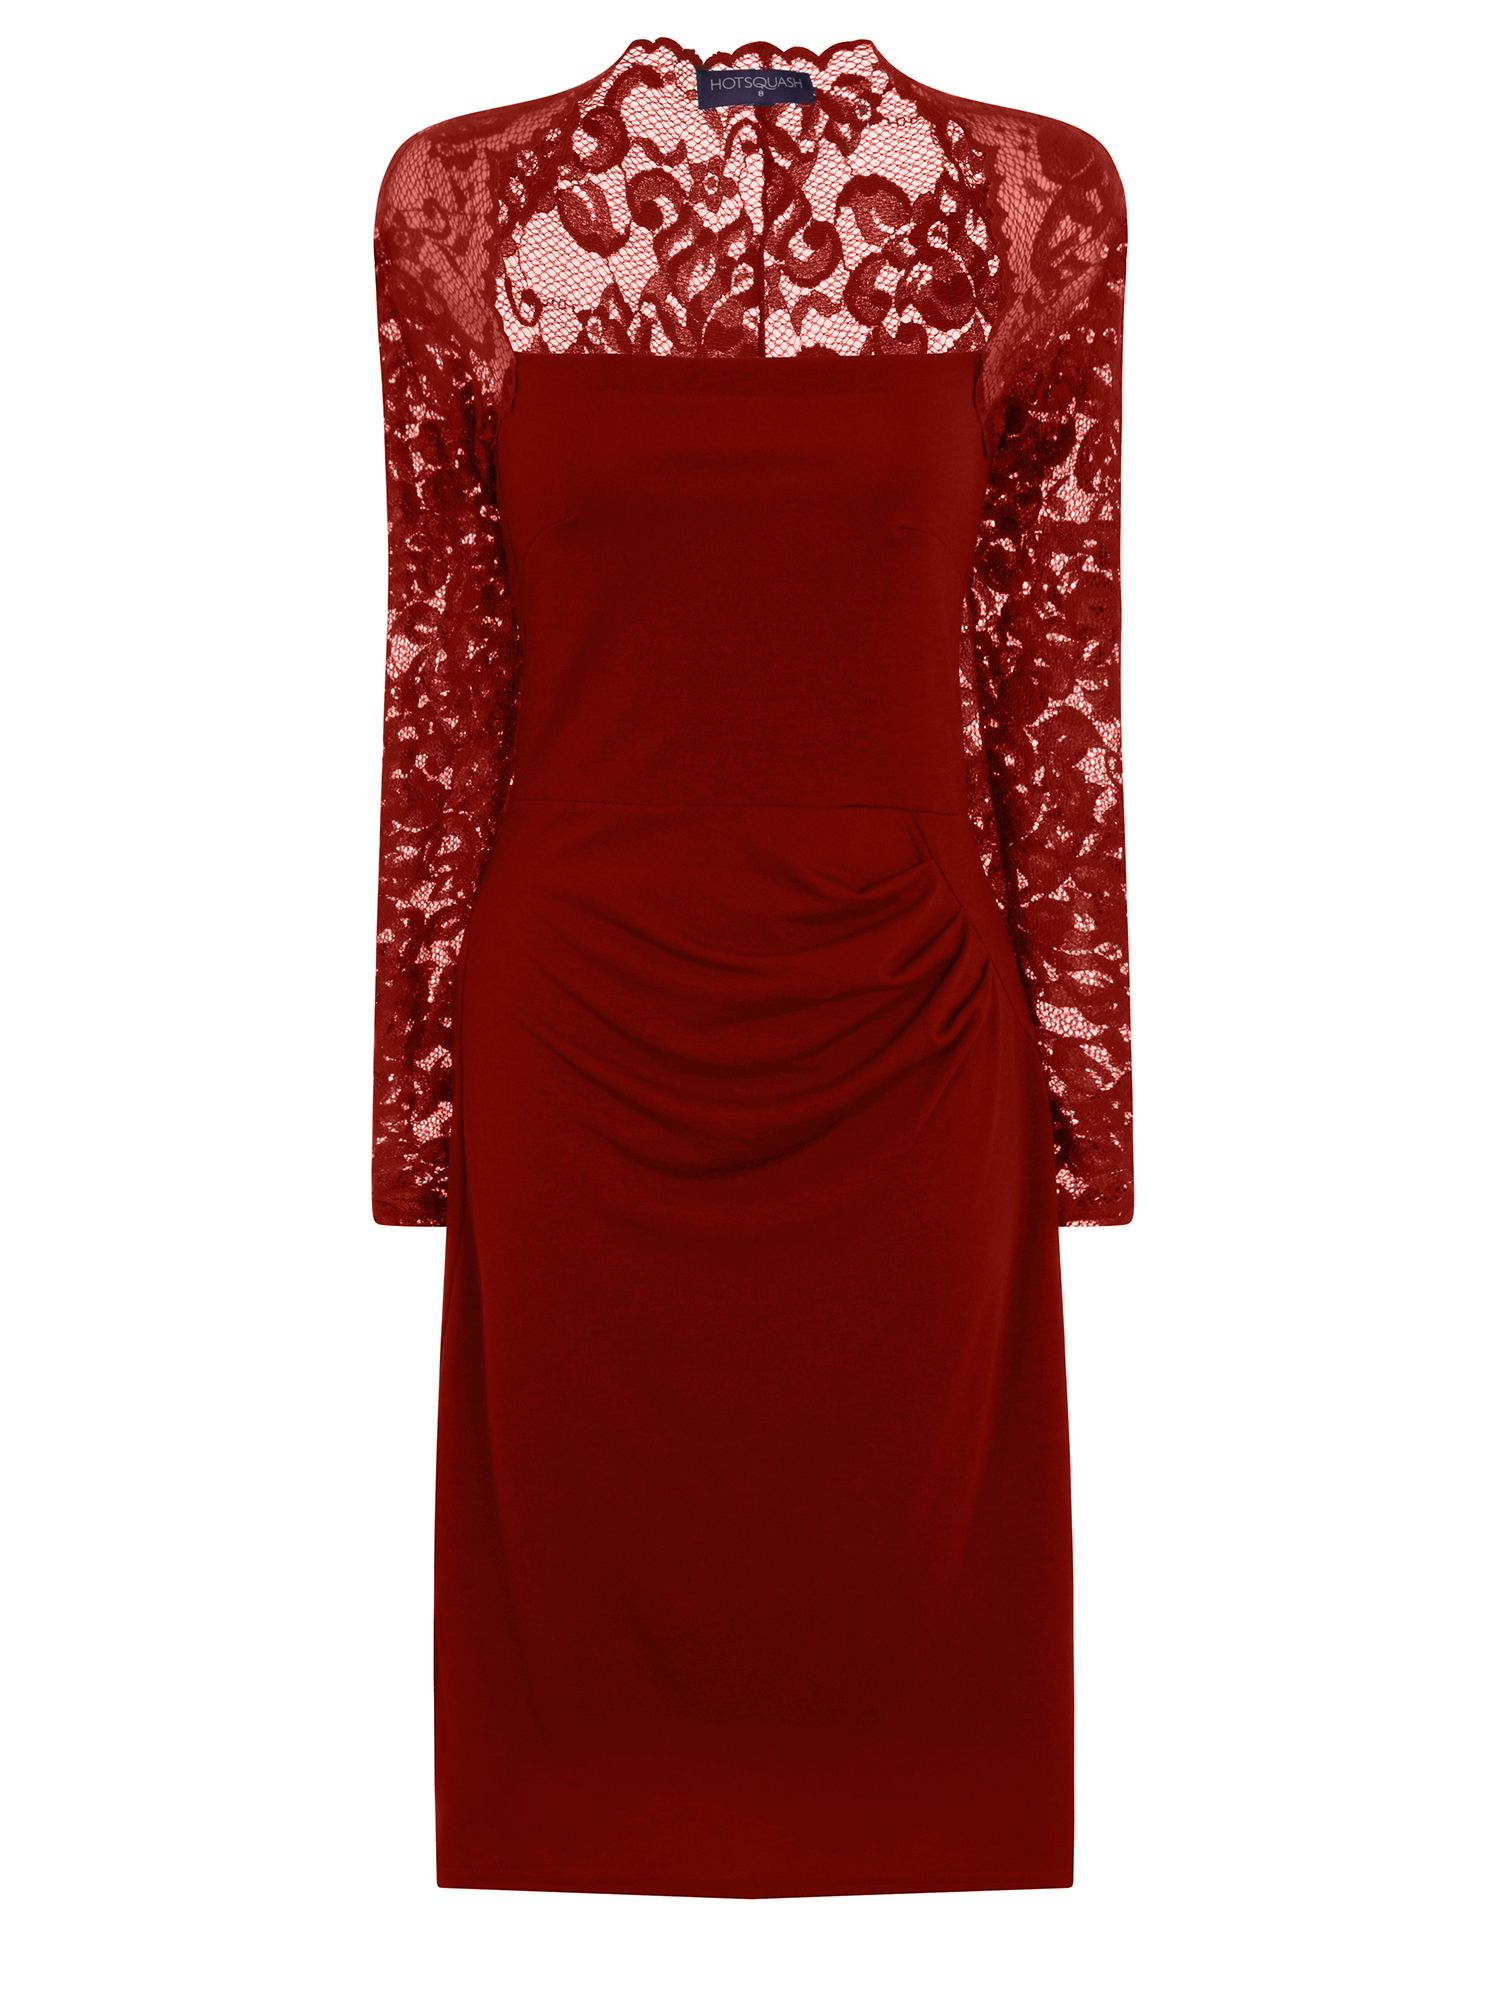 HotSquash Lace Sleeved Dress In Clever Fabric, Red